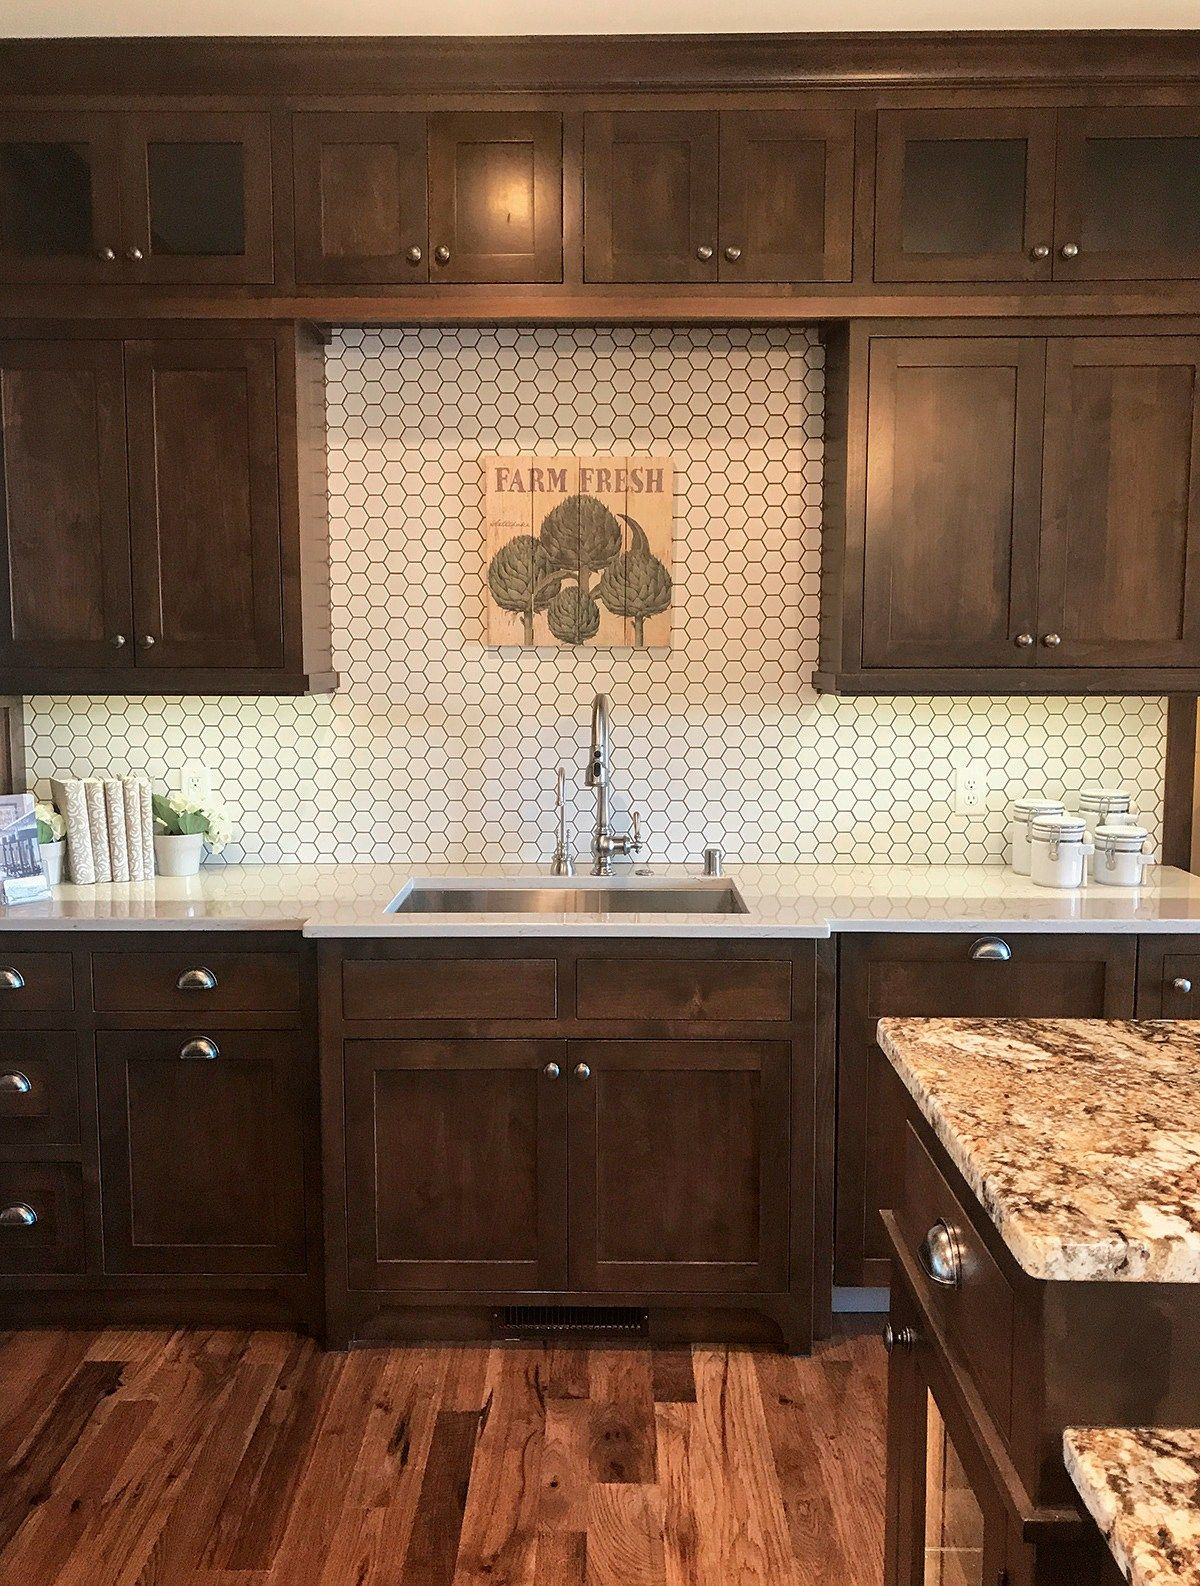 Trends From The Tour Herringbone Hexagons And Terracotta Schneiderman S The Blog Design And Decorating Dark Wood Kitchen Cabinets Backsplash With Dark Cabinets Brown Cabinets